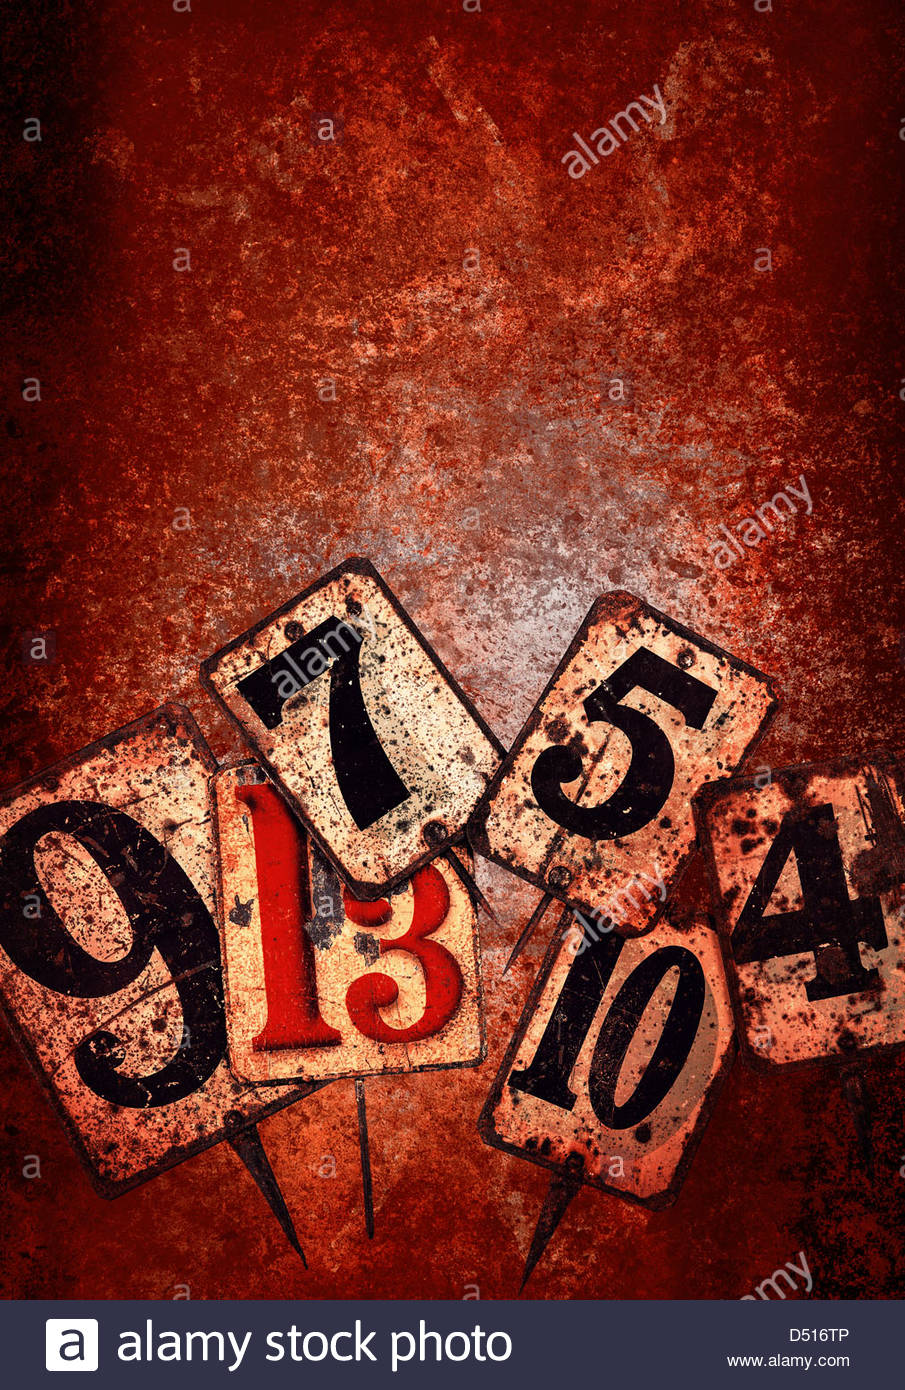 grunge numbers red - Stock Image